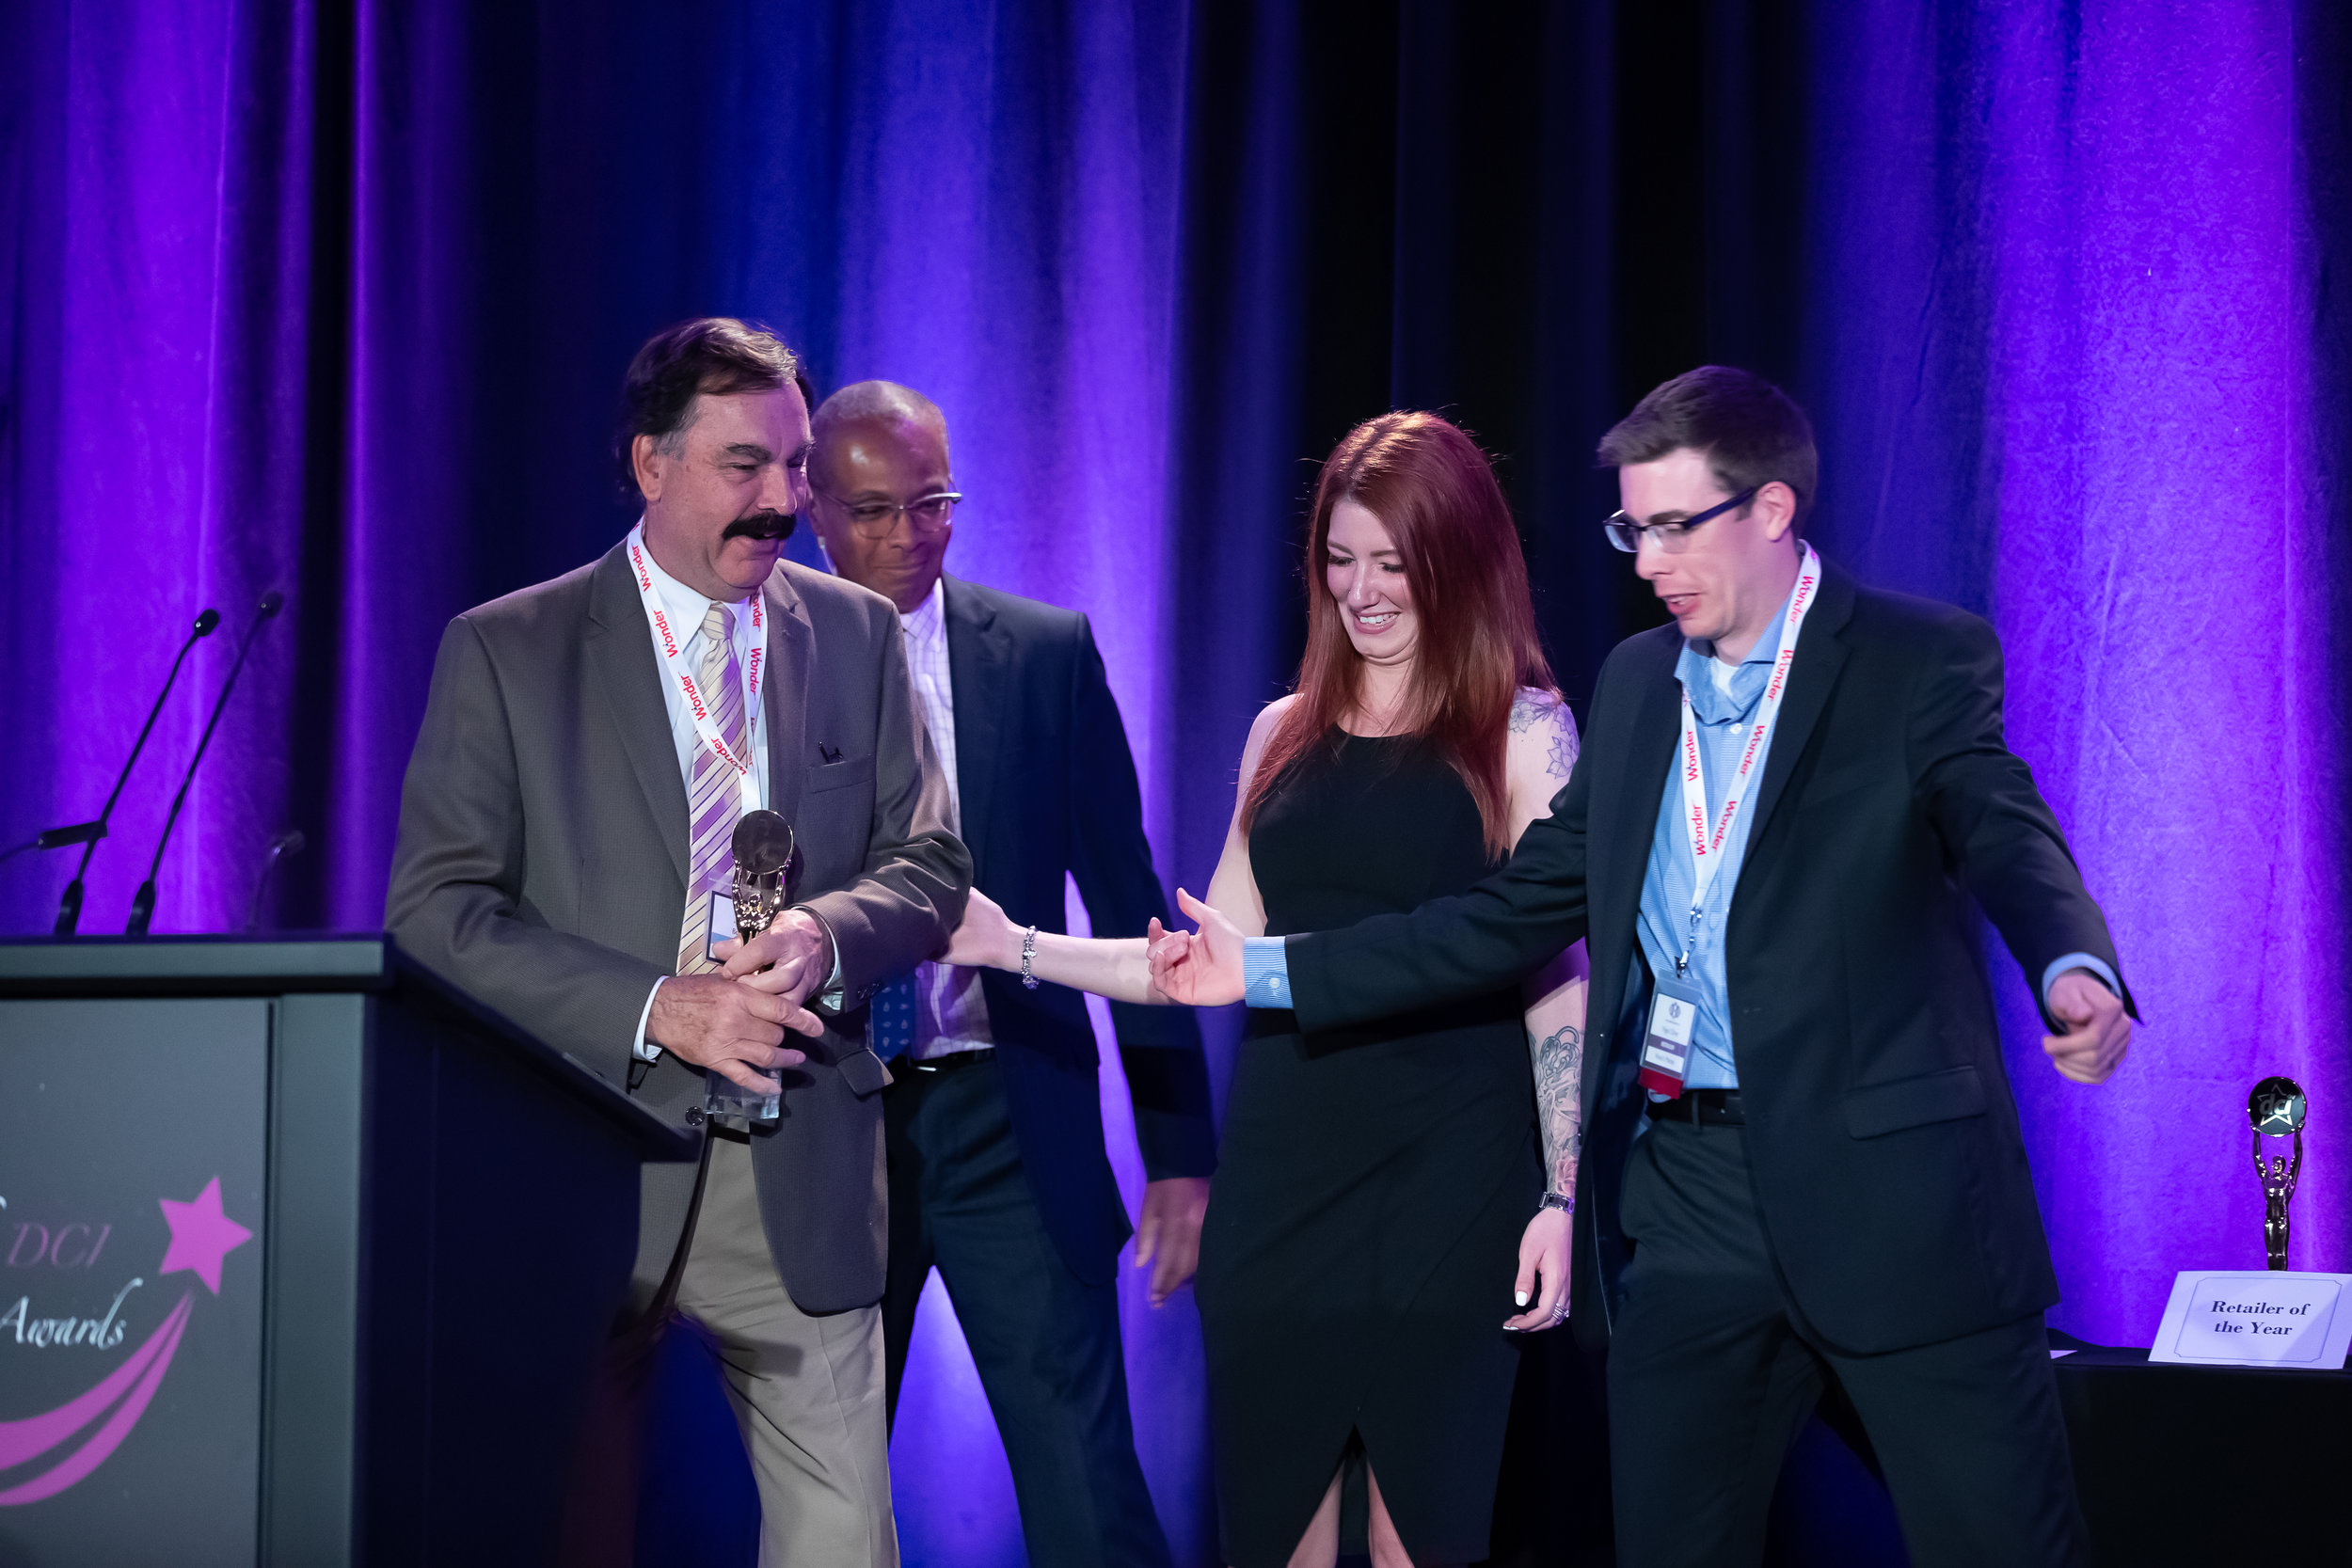 Bob Brema (William M. Dunne & Associates), Star Awards Emcee Evan Carter, Star Awards Presenter Melissa Lynne-Schaffer and DCI Treasurer Nigel Oliver of Vince's Market